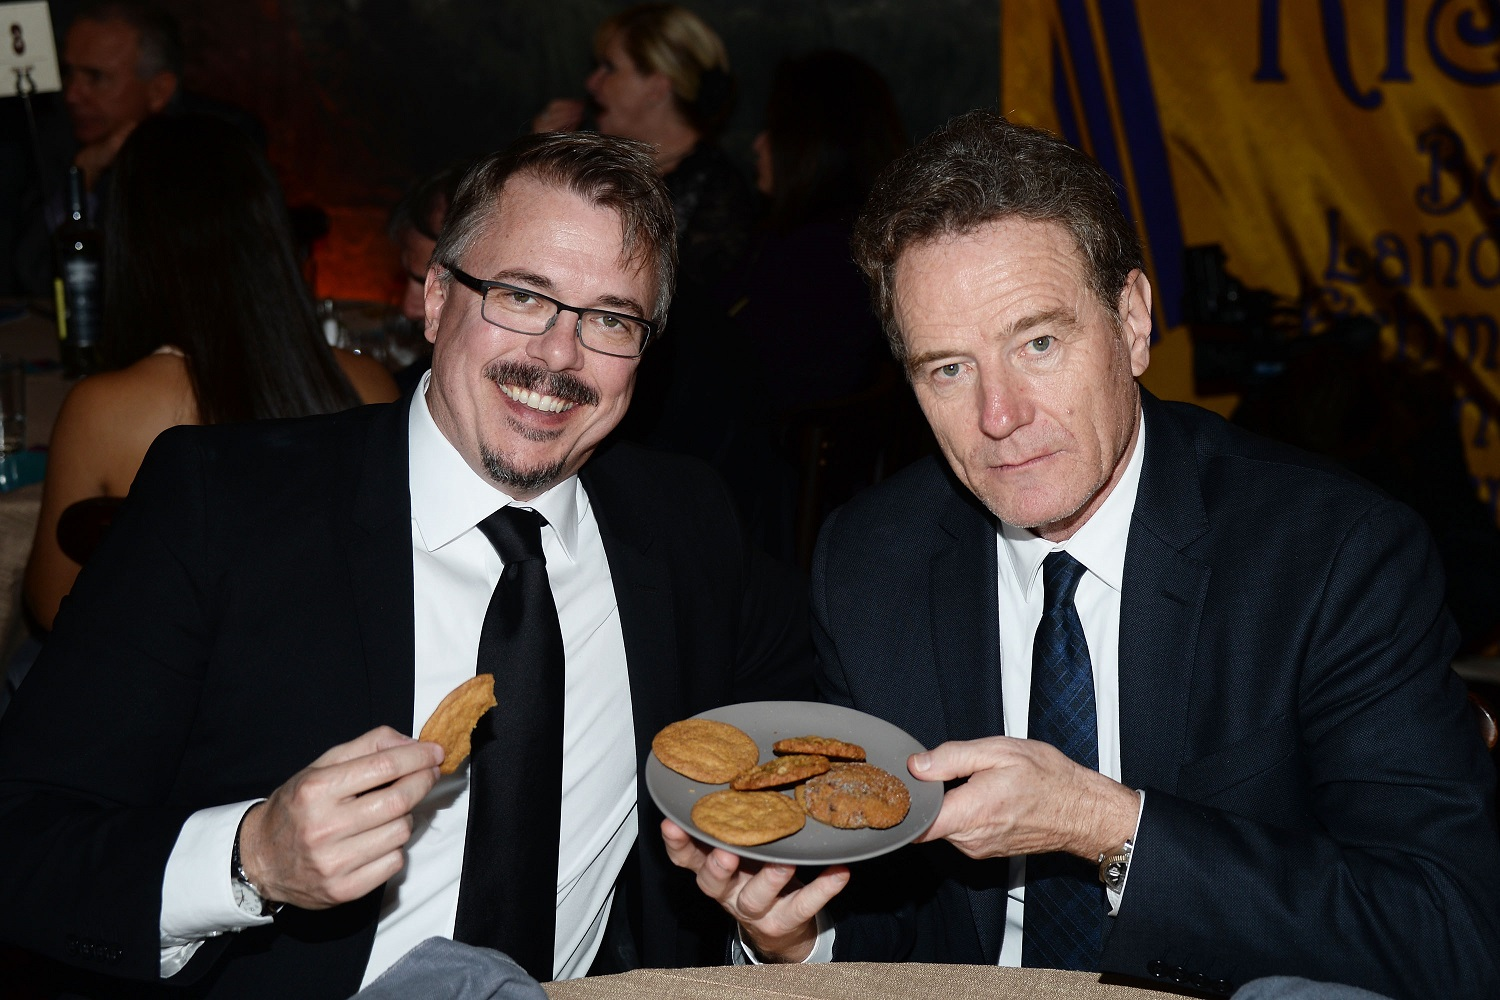 Vince Gilligan and actor Bryan Cranston of Breaking Bad fame